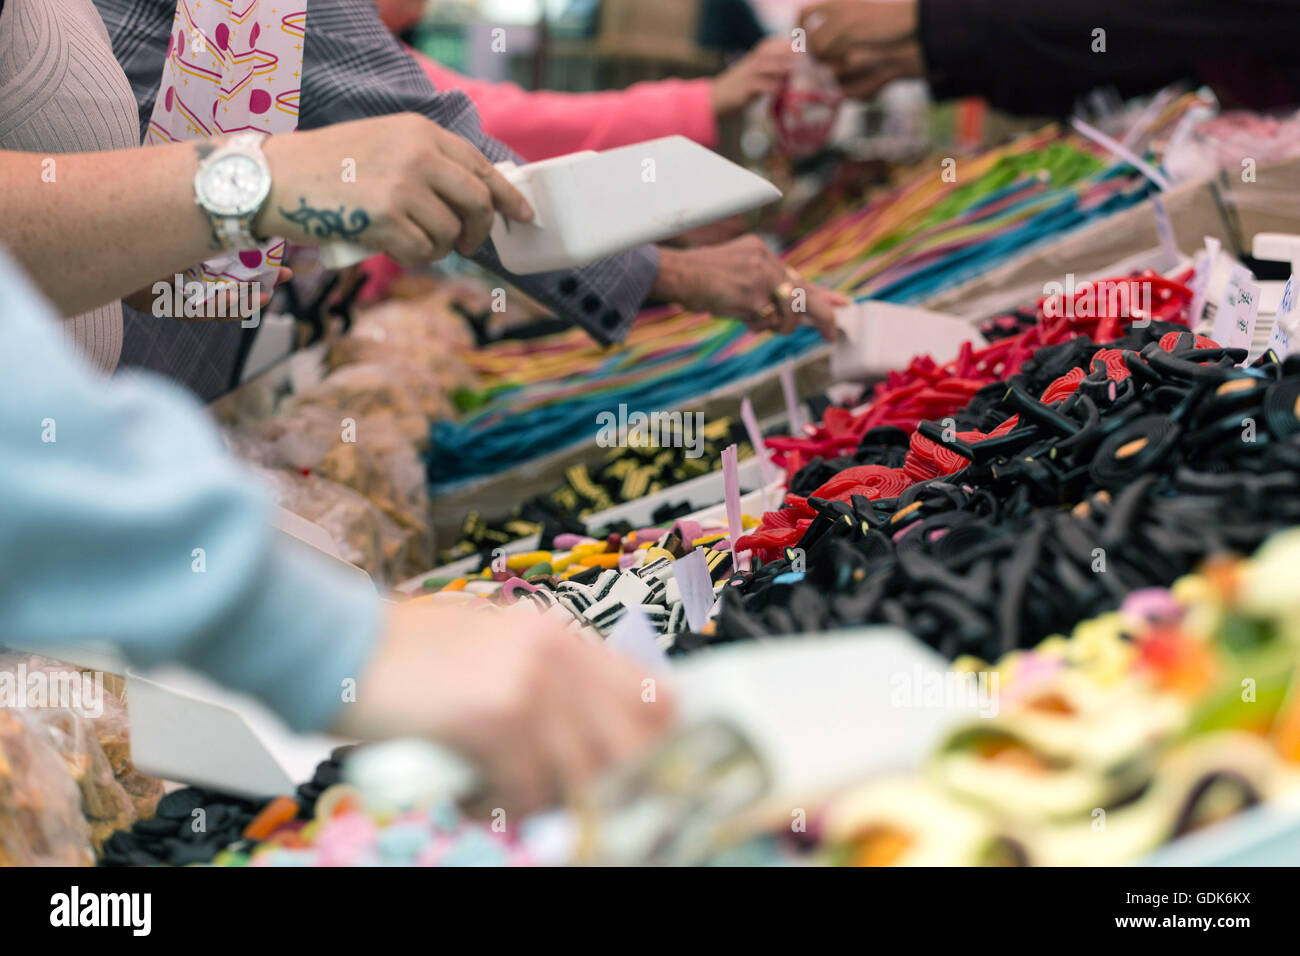 Members of the public help themselves to liquorice sweets, at the Pontefract Liquorice Festival, in Pontefract. Stock Photo